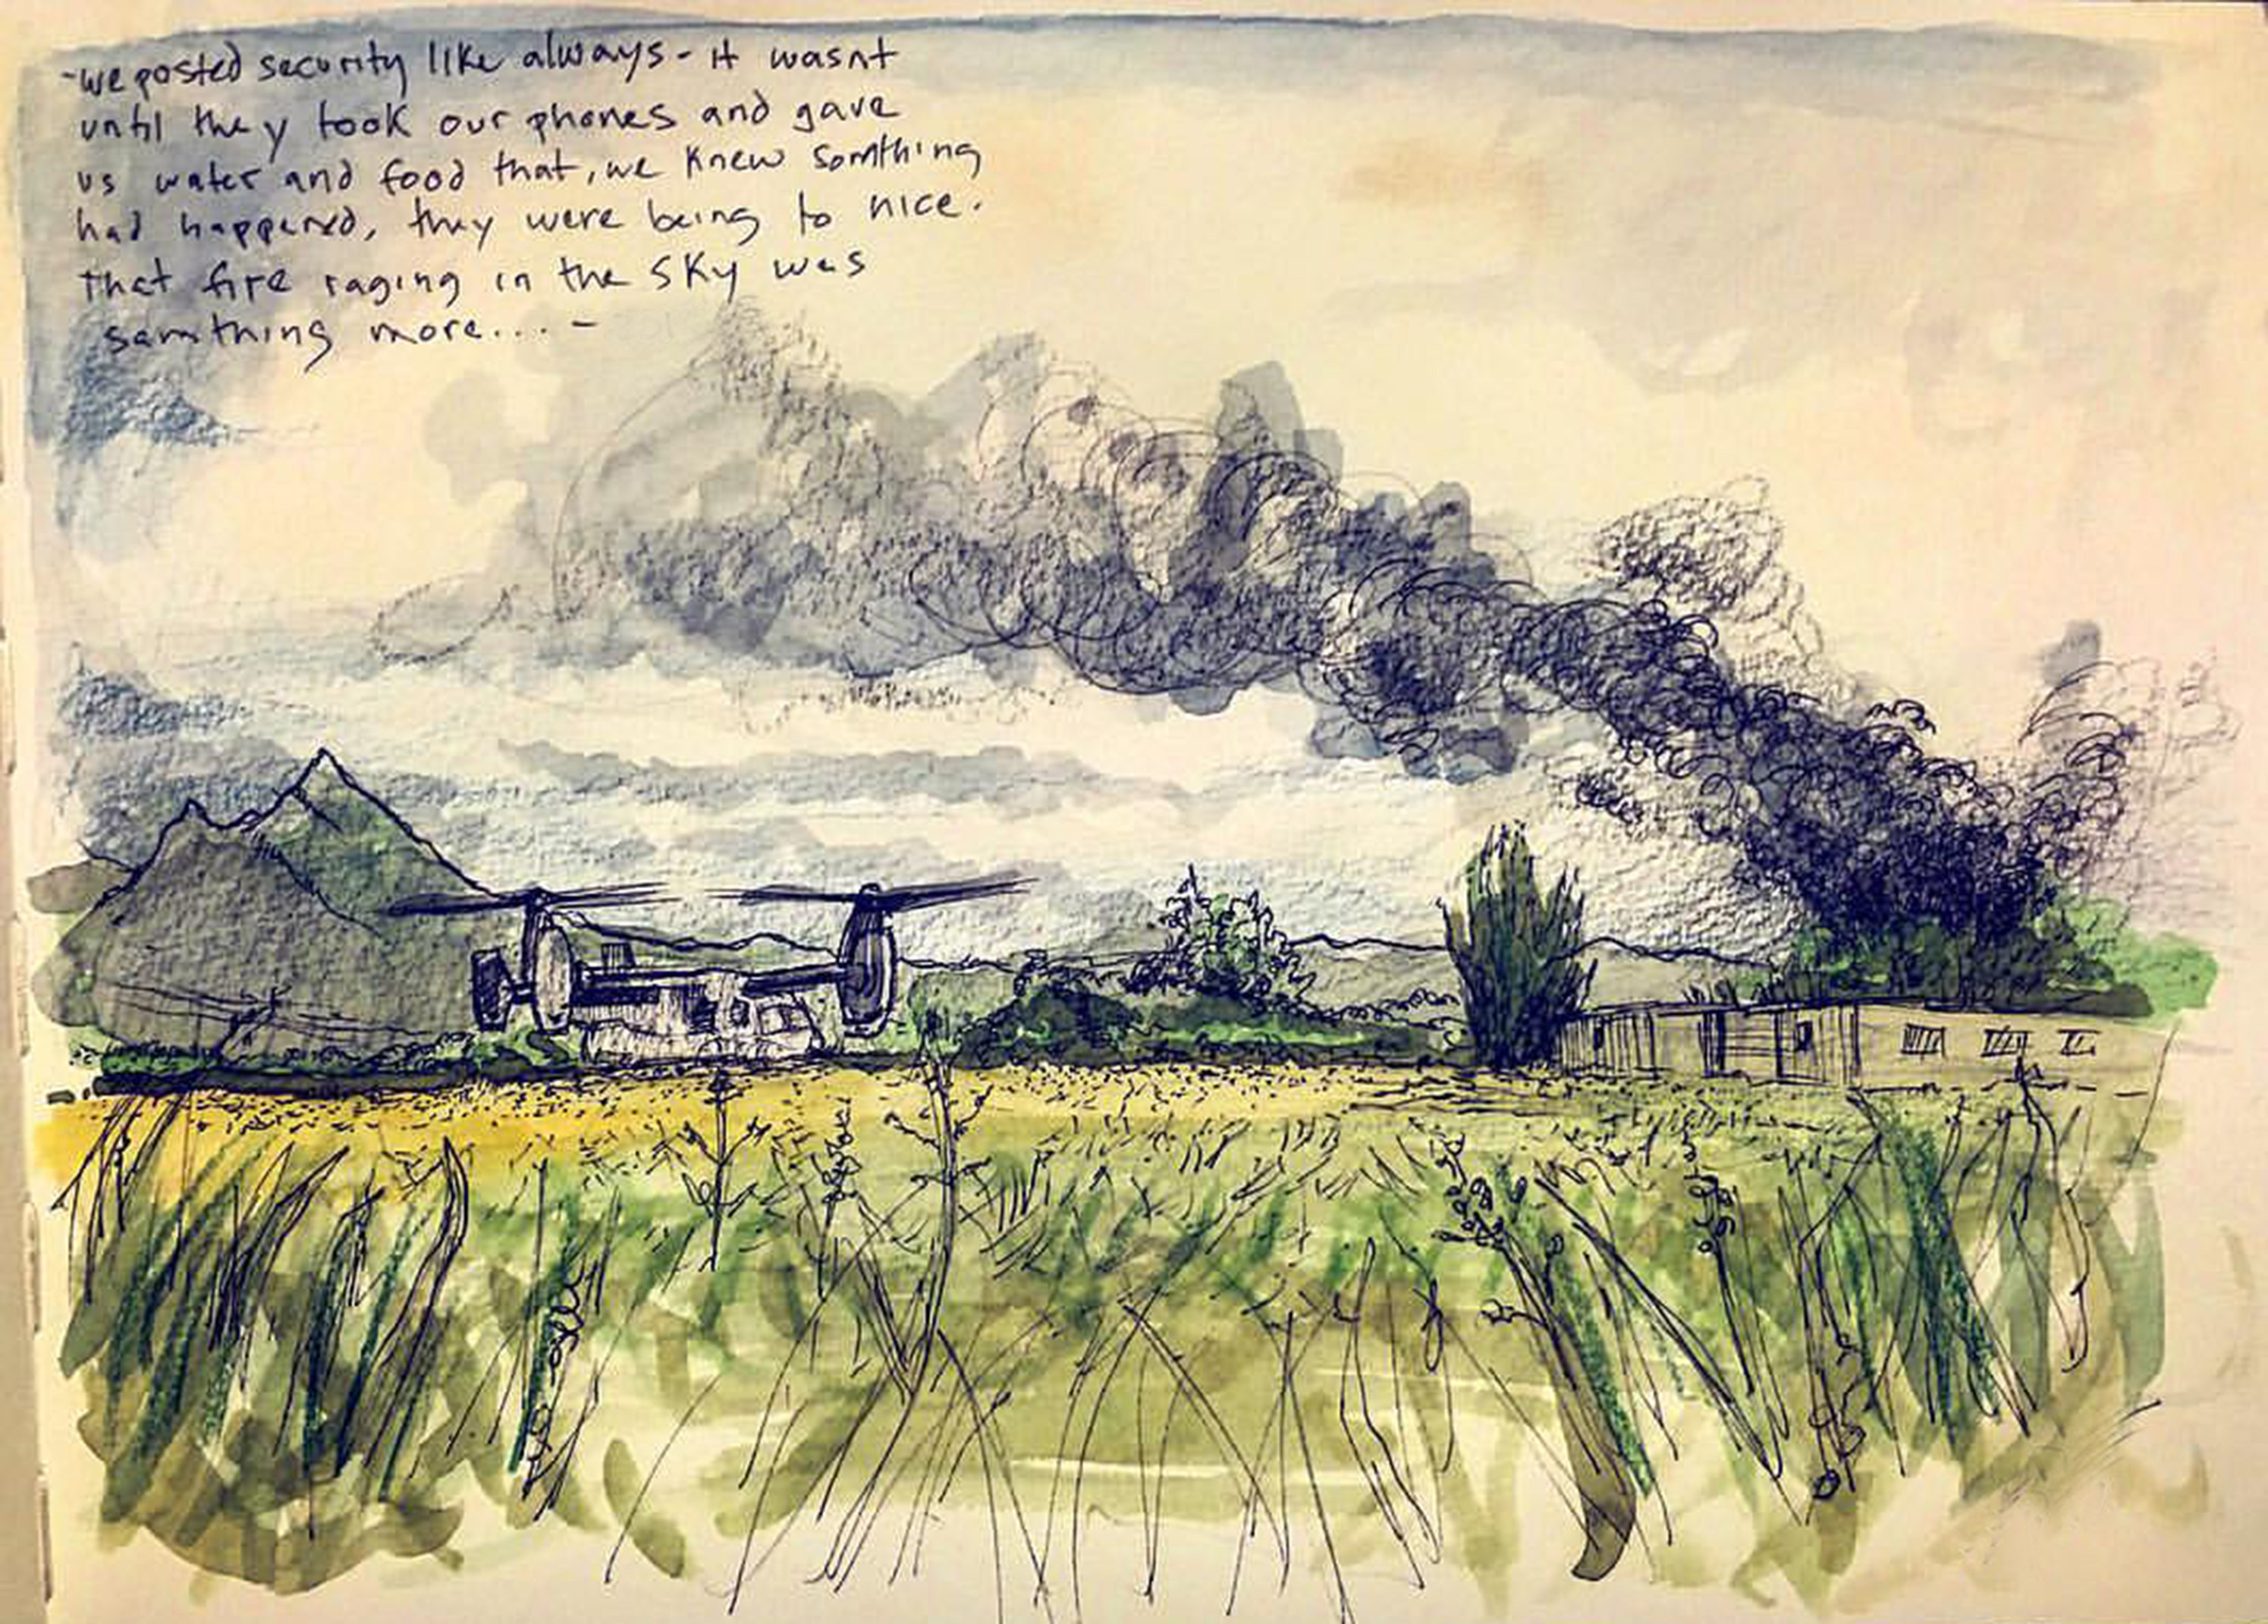 Full color drawing of a field with a downed helicopter in the back and smoke